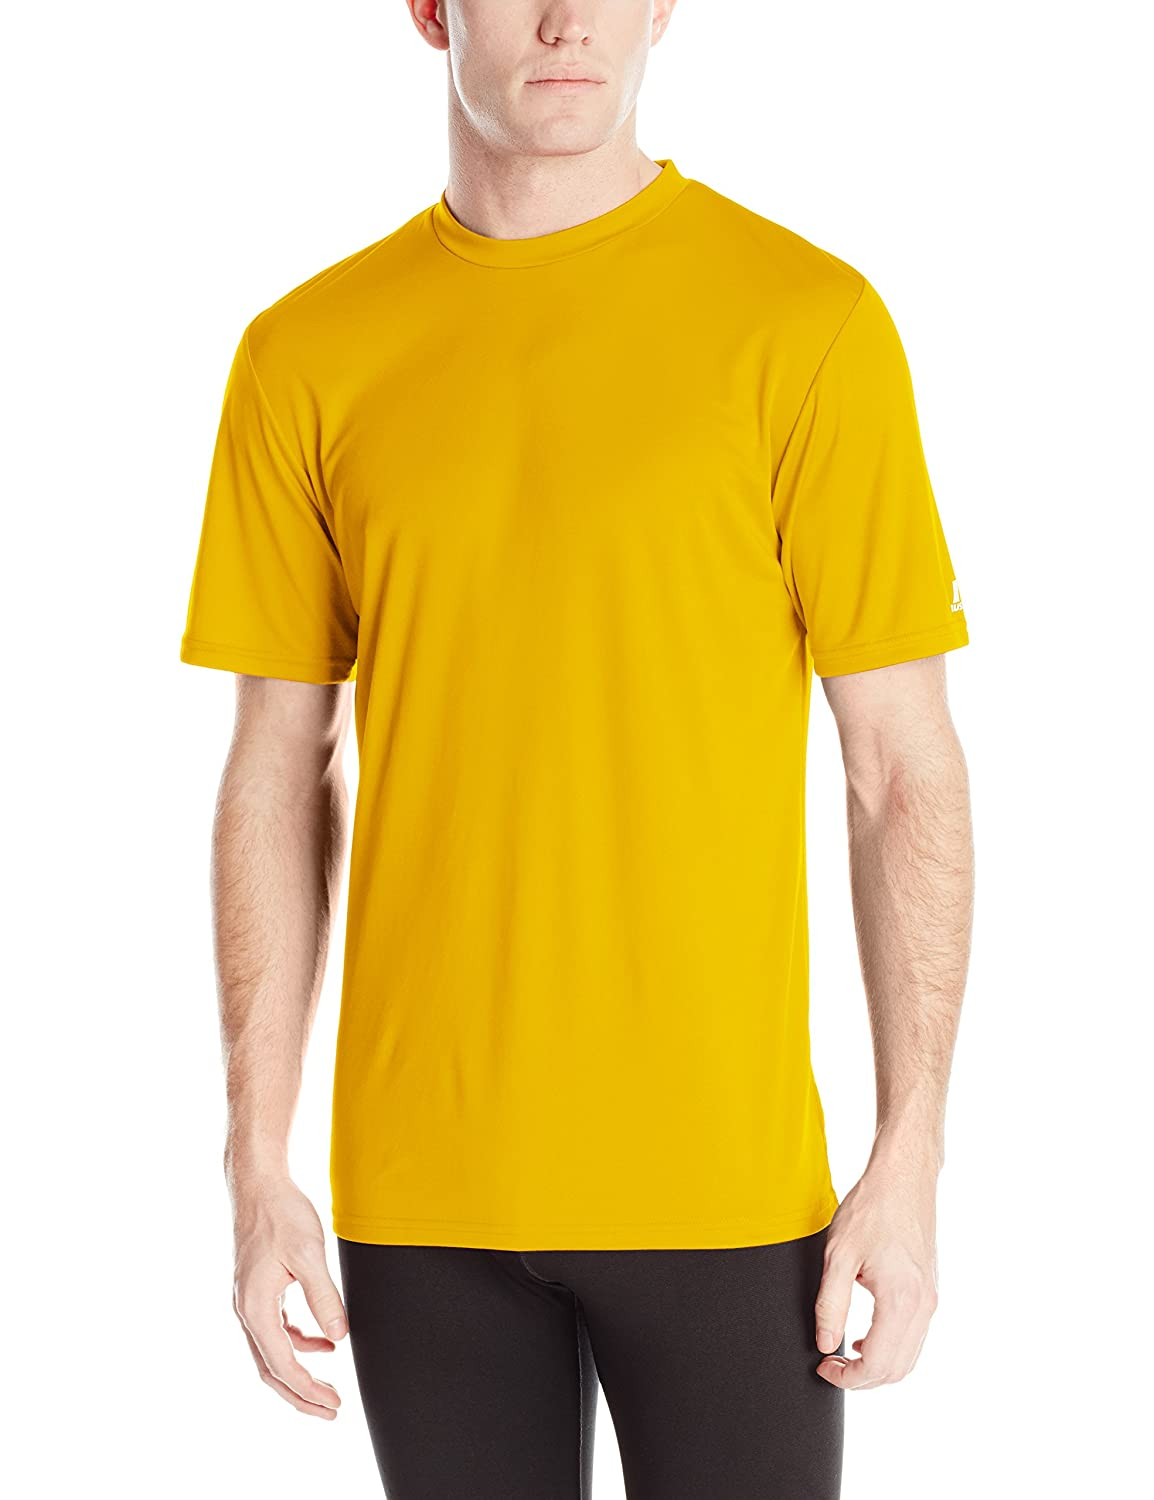 Russell Athletic Men's Short-Sleeve Performance T-Shirt 629X2M